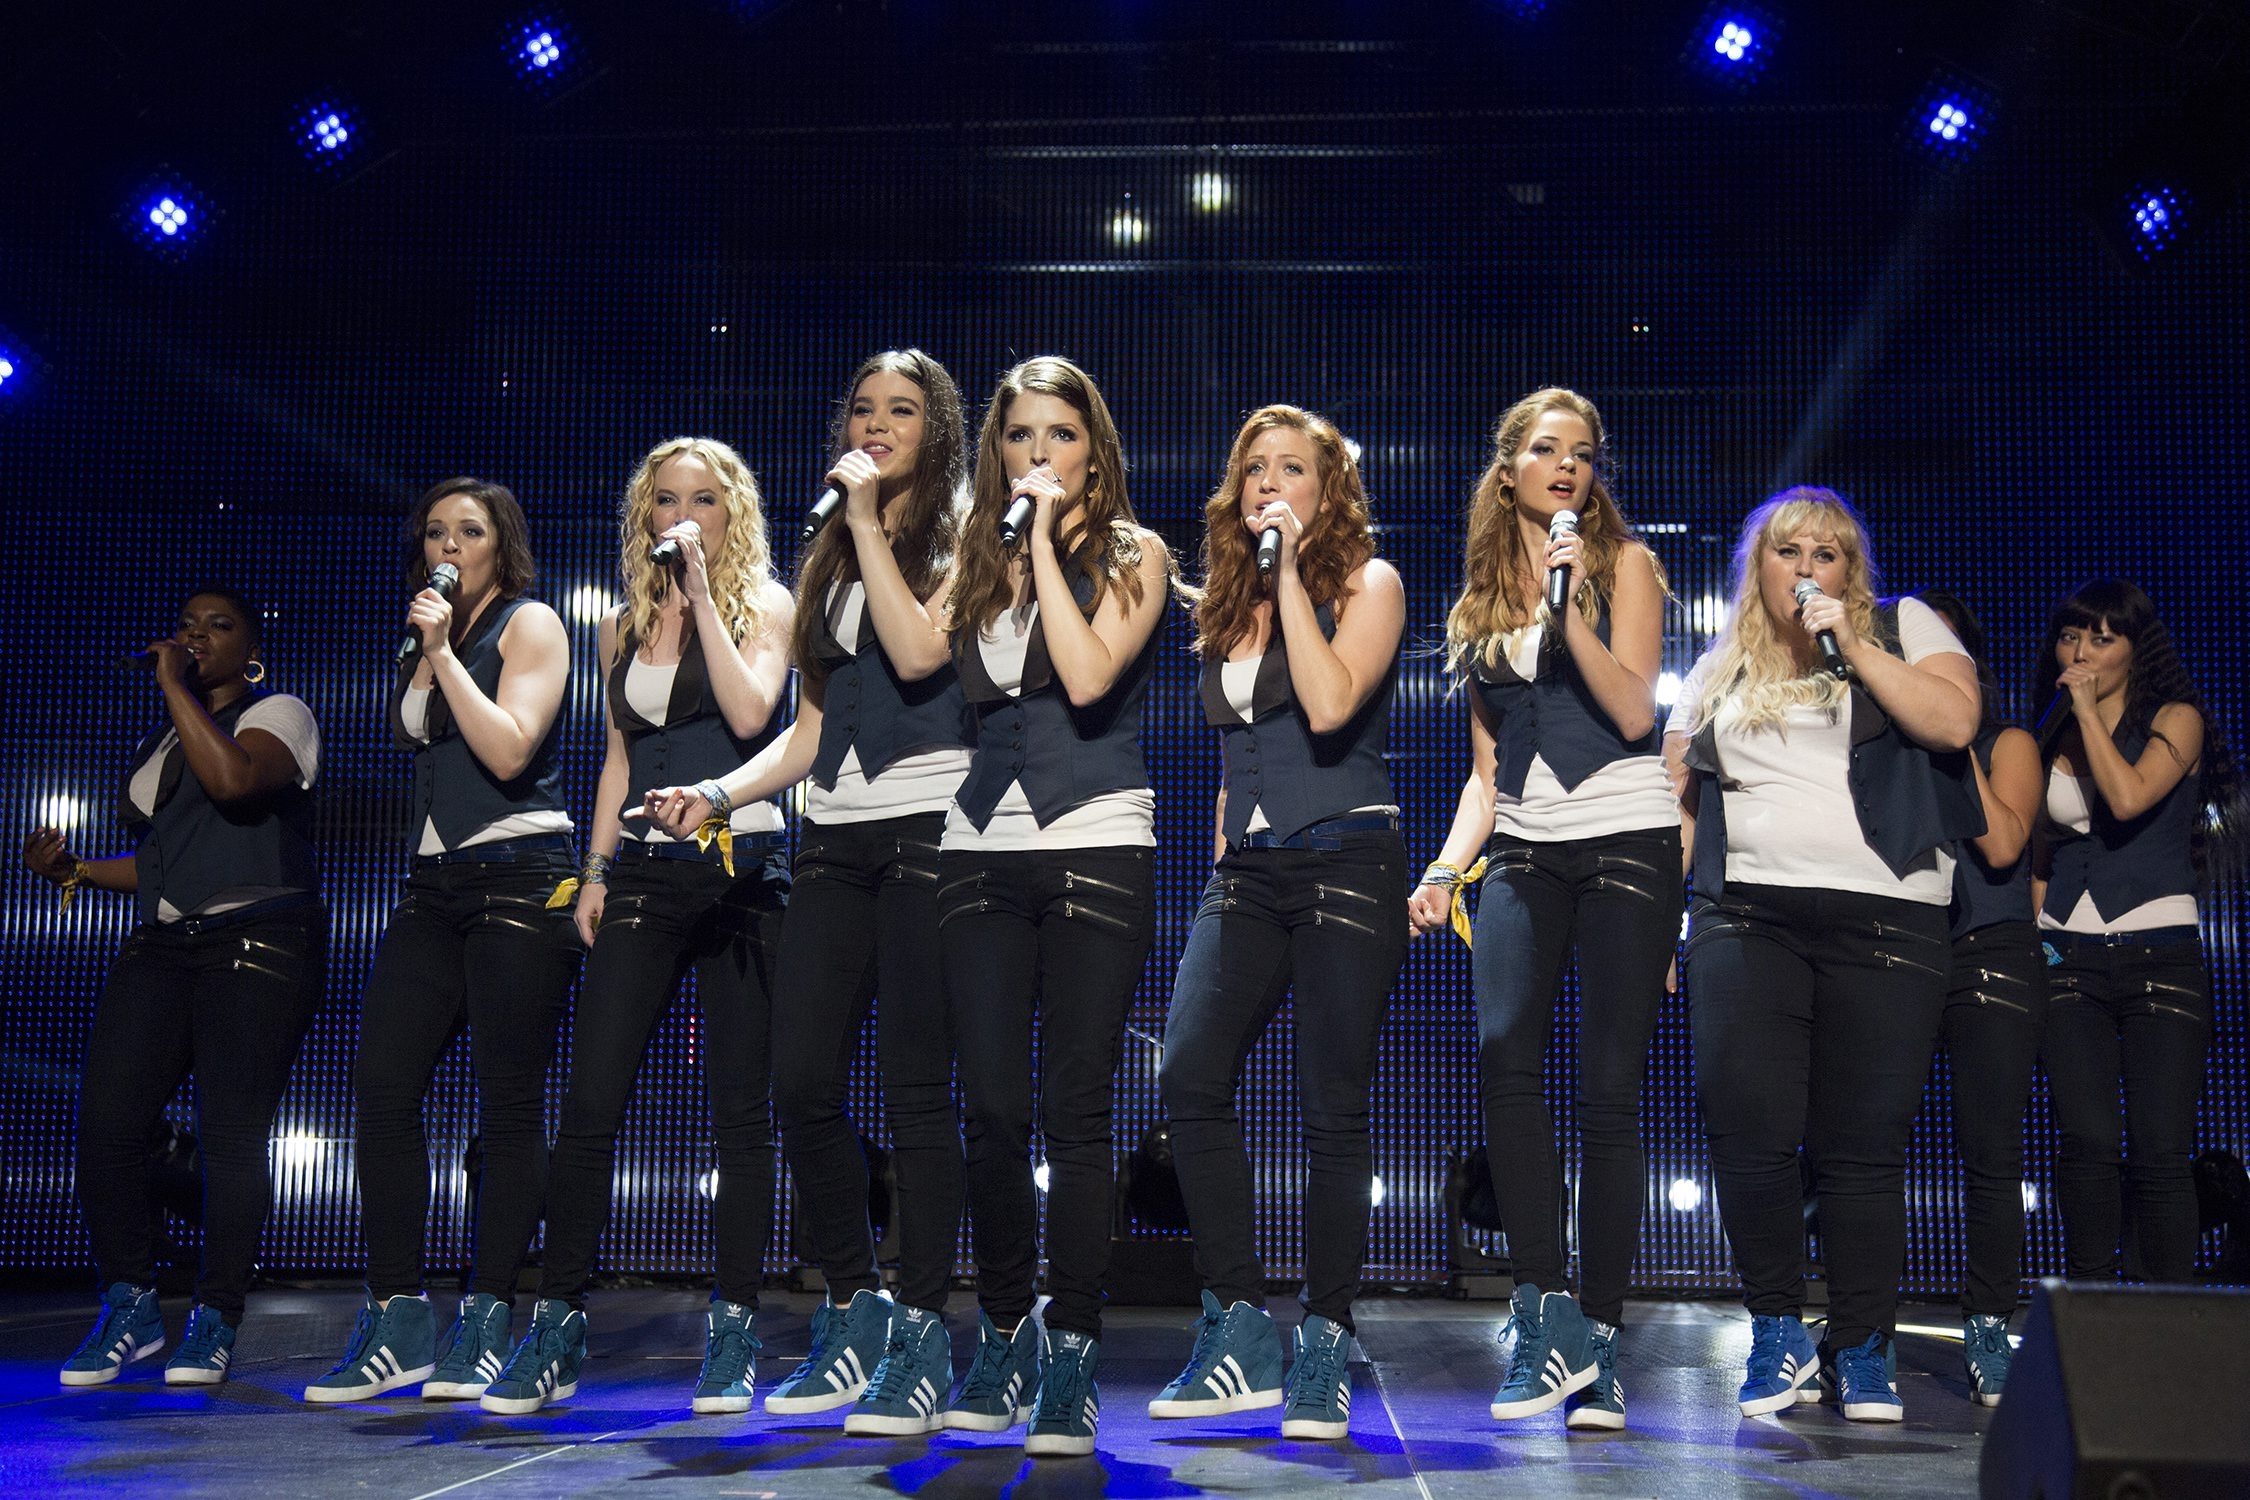 Pitch Perfect 2: (L to R) ESTER DEAN, SHELLEY REGNER, KELLEY JAKLE, HAILEE STEINFELD, ANNA KENDRICK, BRITTANY SNOW, ALEXIS KNAPP, REBEL WILSON, and HANNA MAE LEE